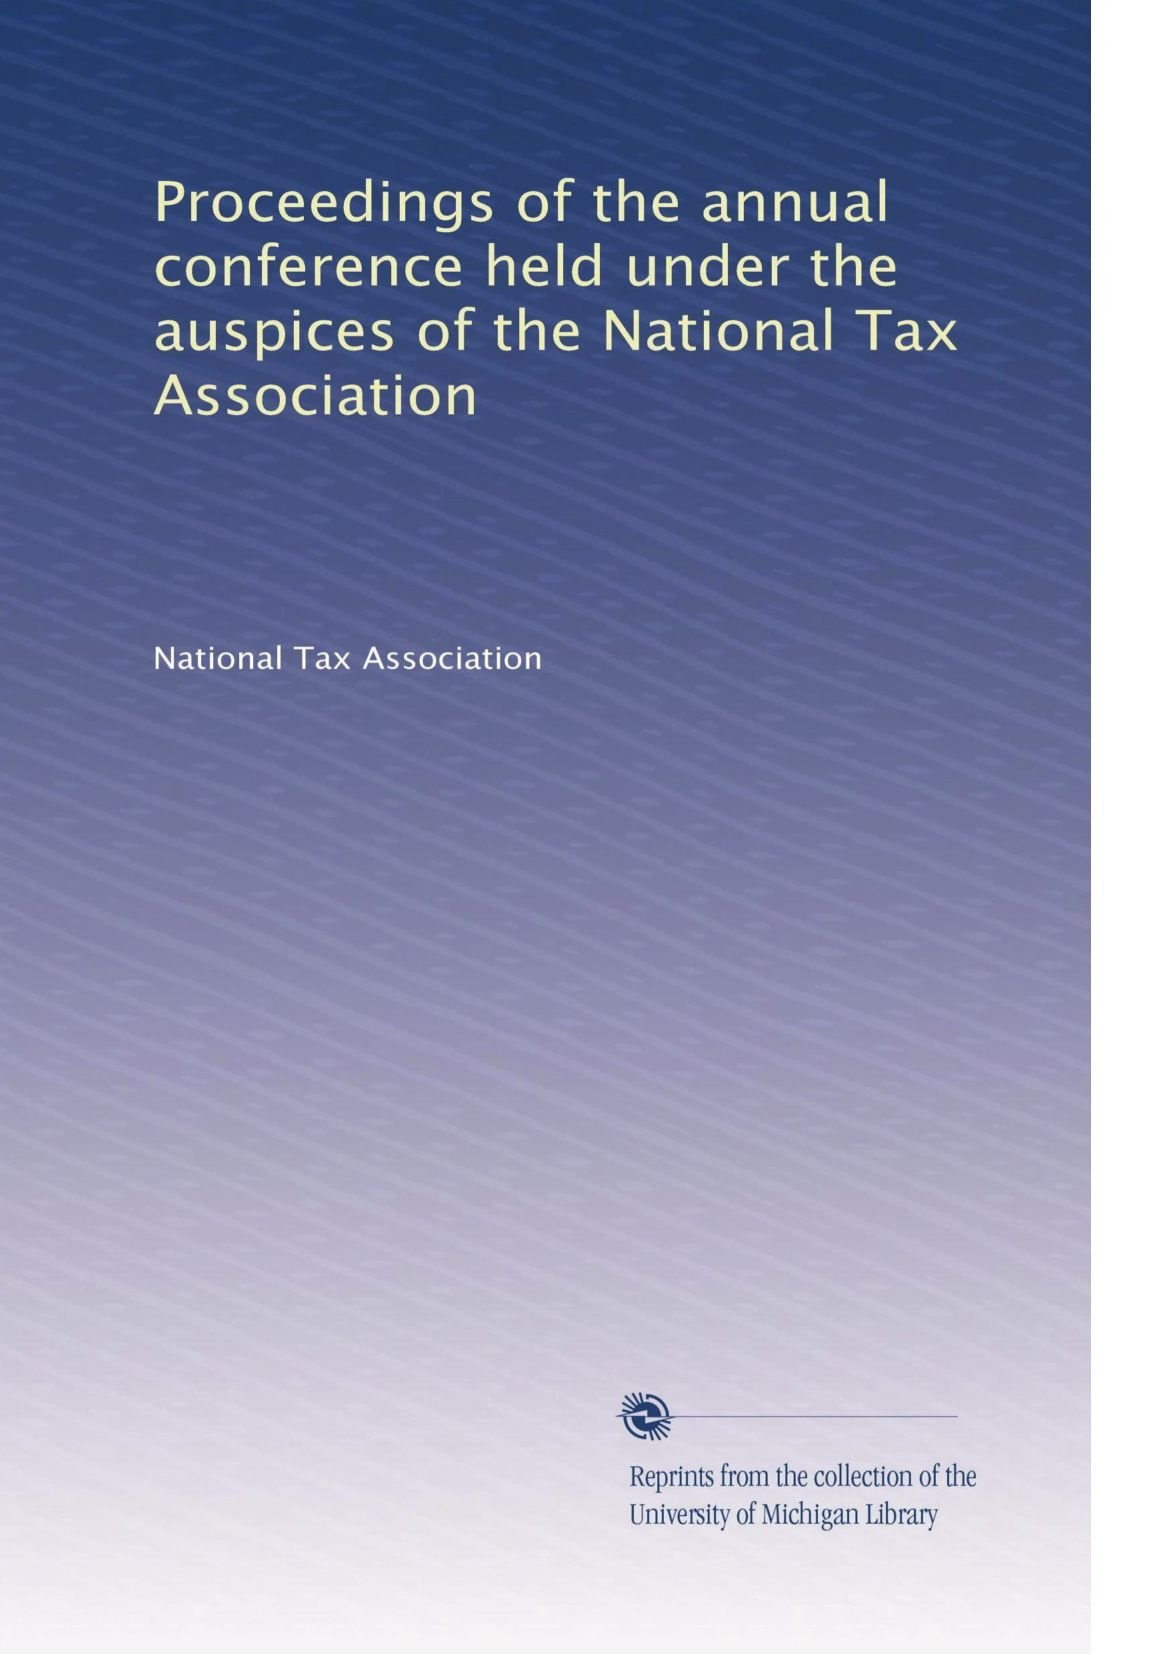 Download Proceedings of the annual conference held under the auspices of the National Tax Association (Volume 5) PDF